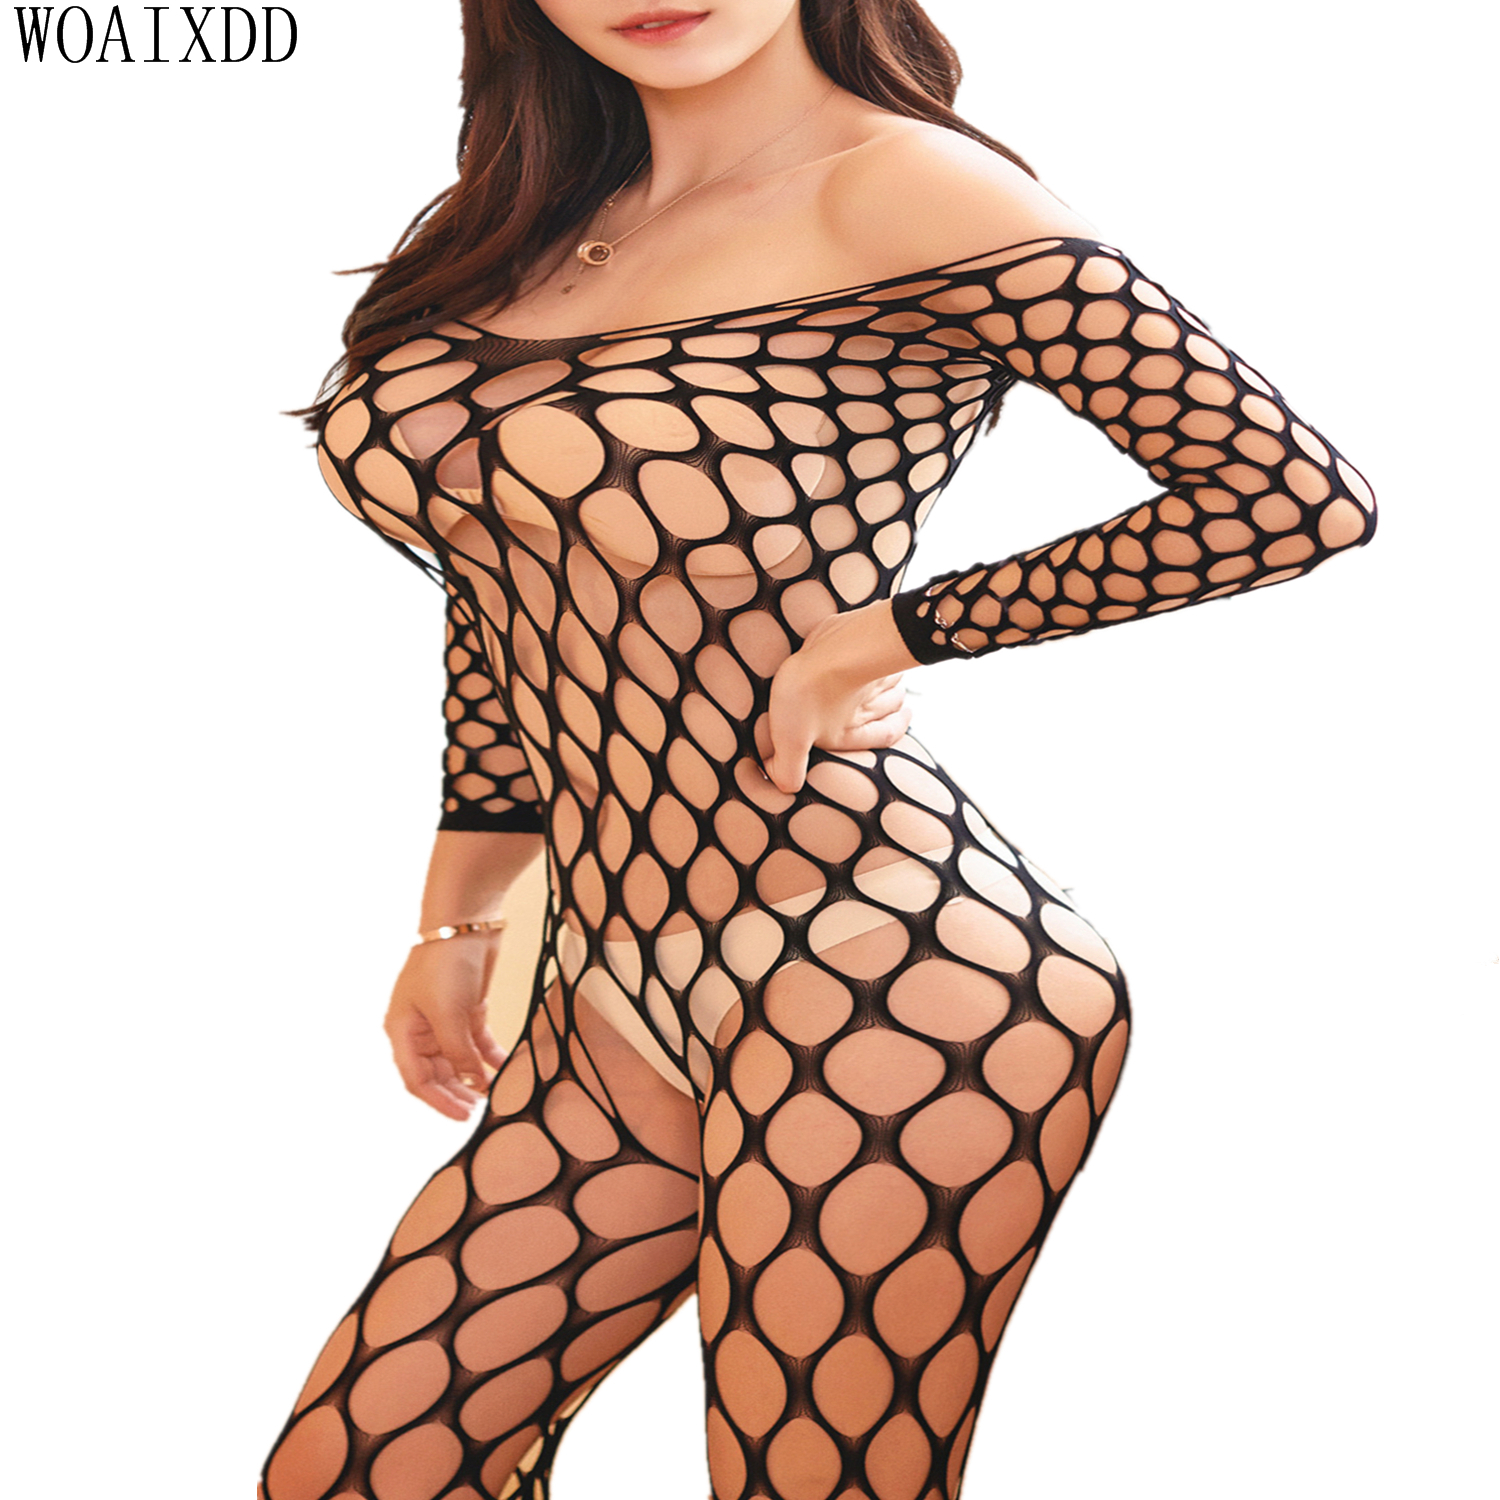 Sexy Lingerie Fishnet Latex <font><b>Catsuit</b></font> Body Stocking Woman Erotic Lingerie Porn <font><b>Sex</b></font> Underwear Open Crotchless Teddies Bodysuits image